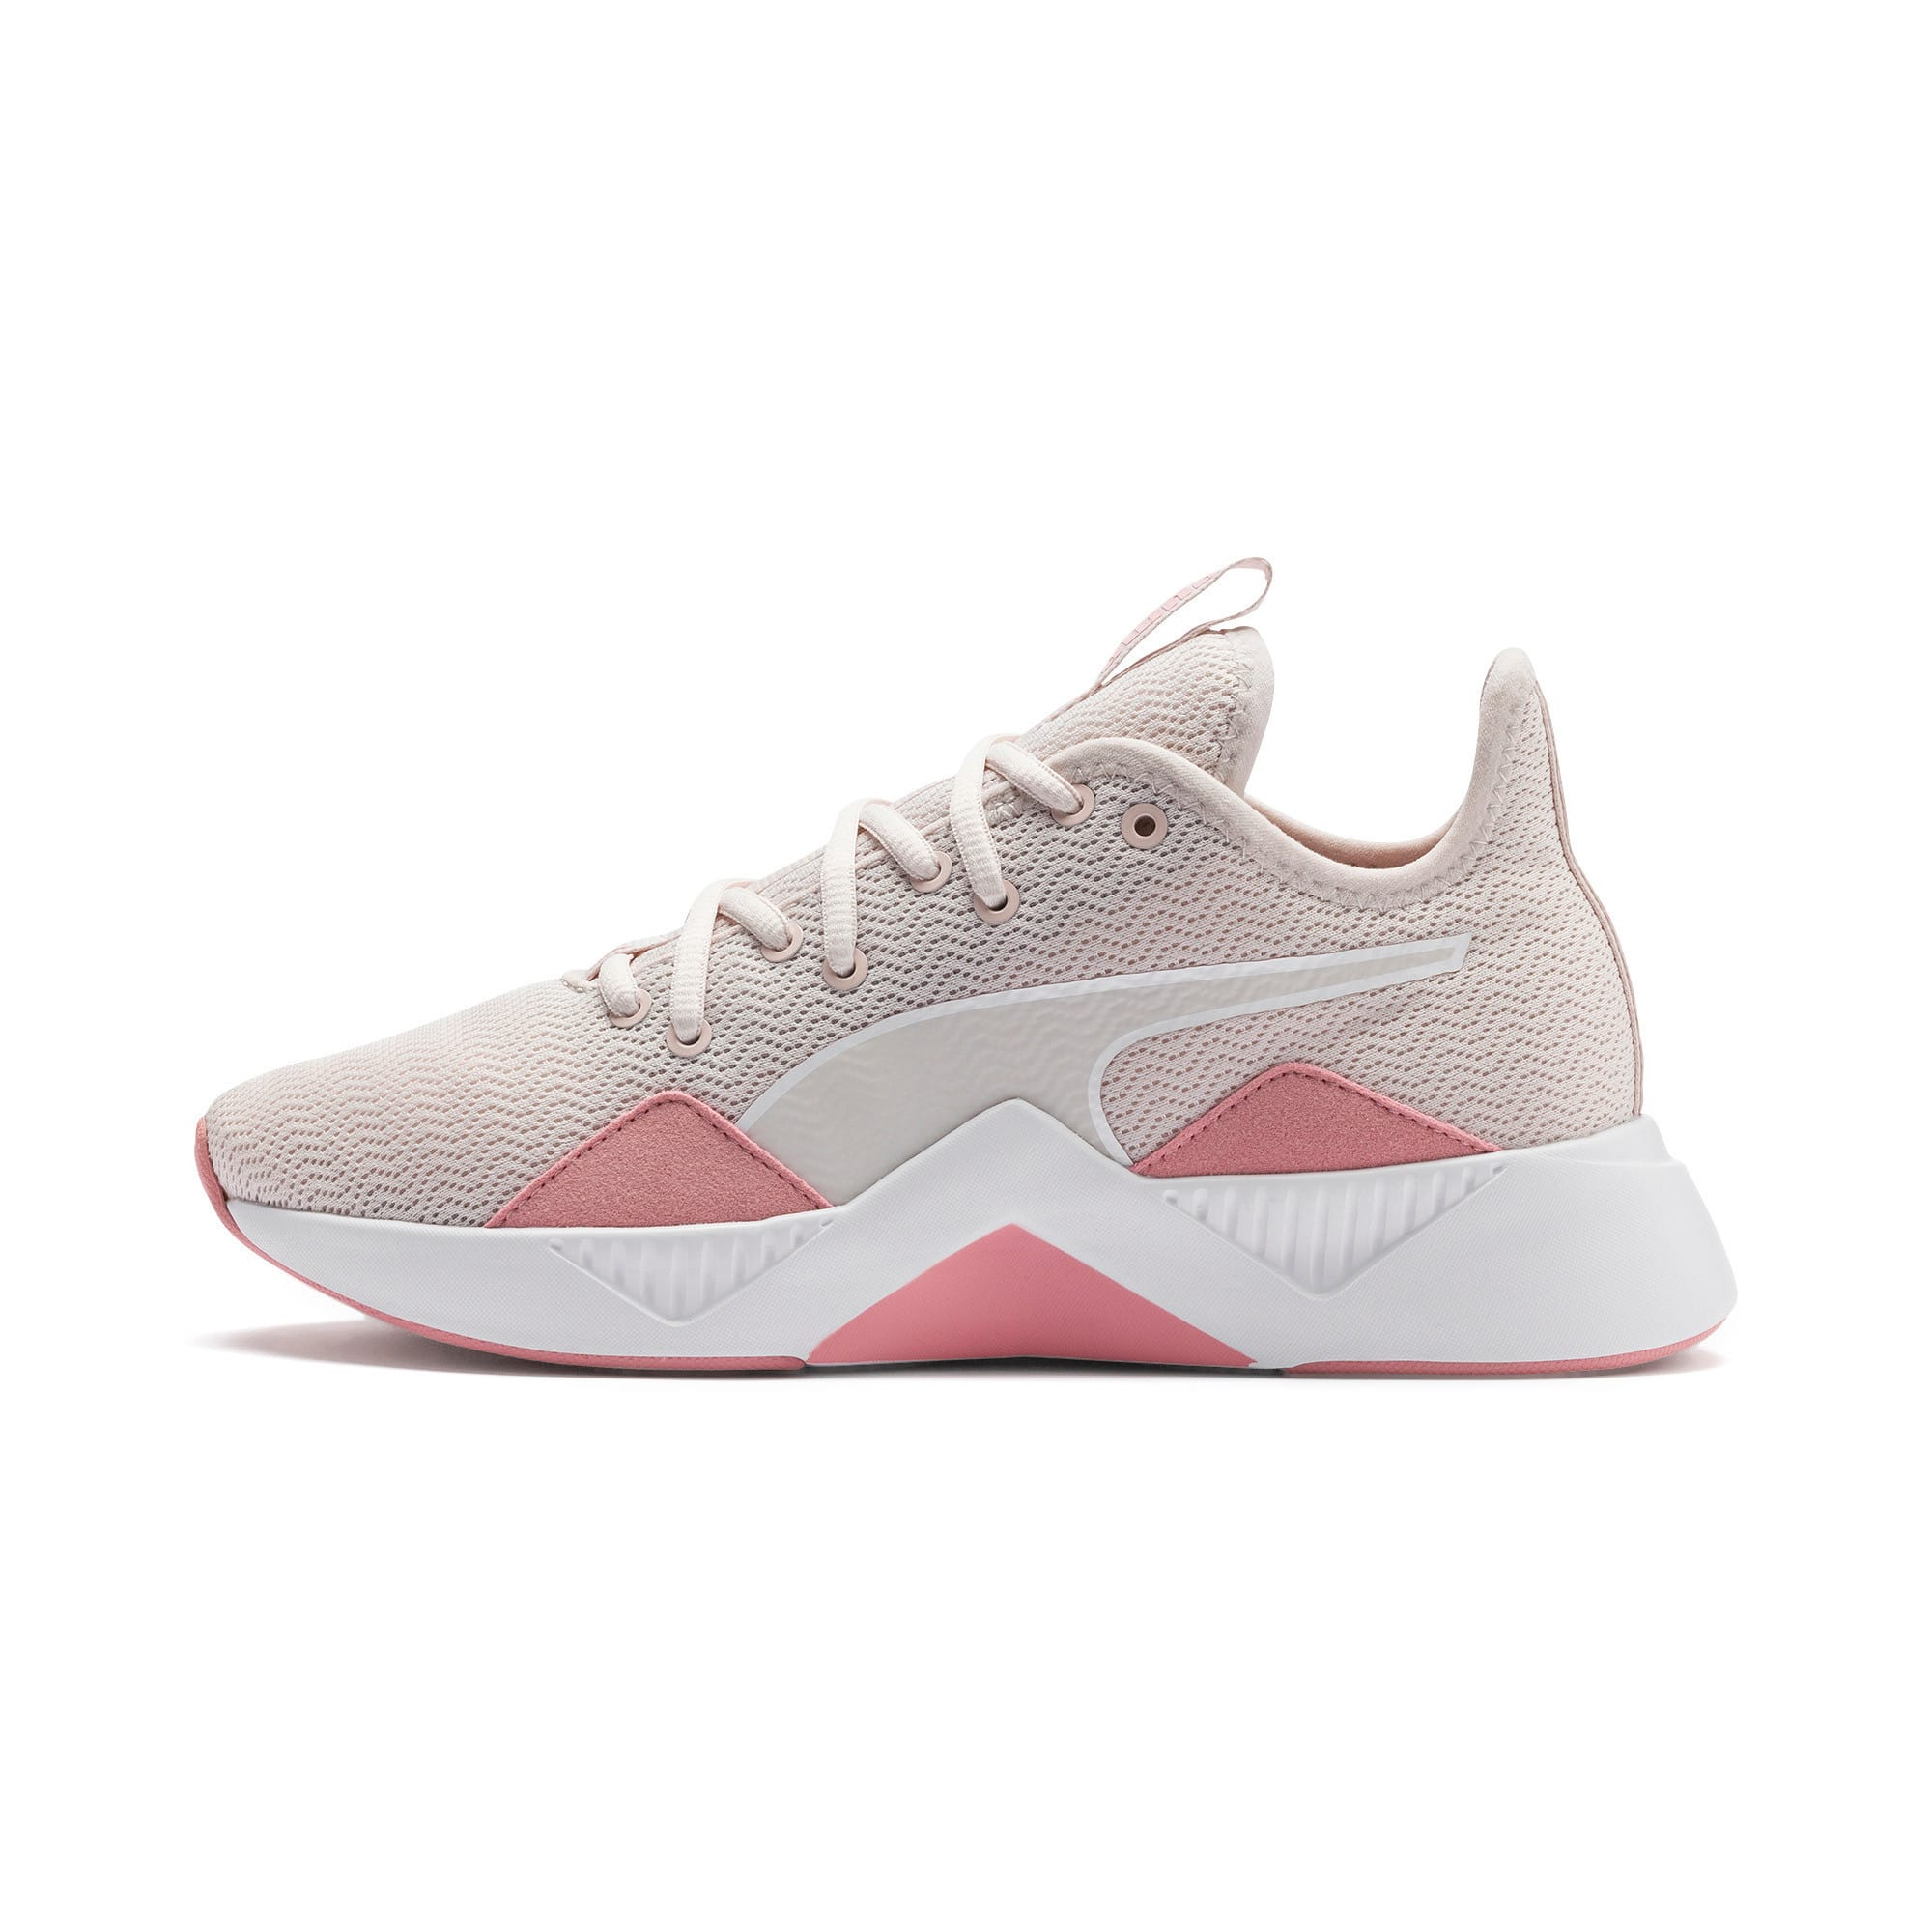 Thumbnail 1 of Incite FS Shift Women's Trainers, Pastel Parchment-Rose-White, medium-IND